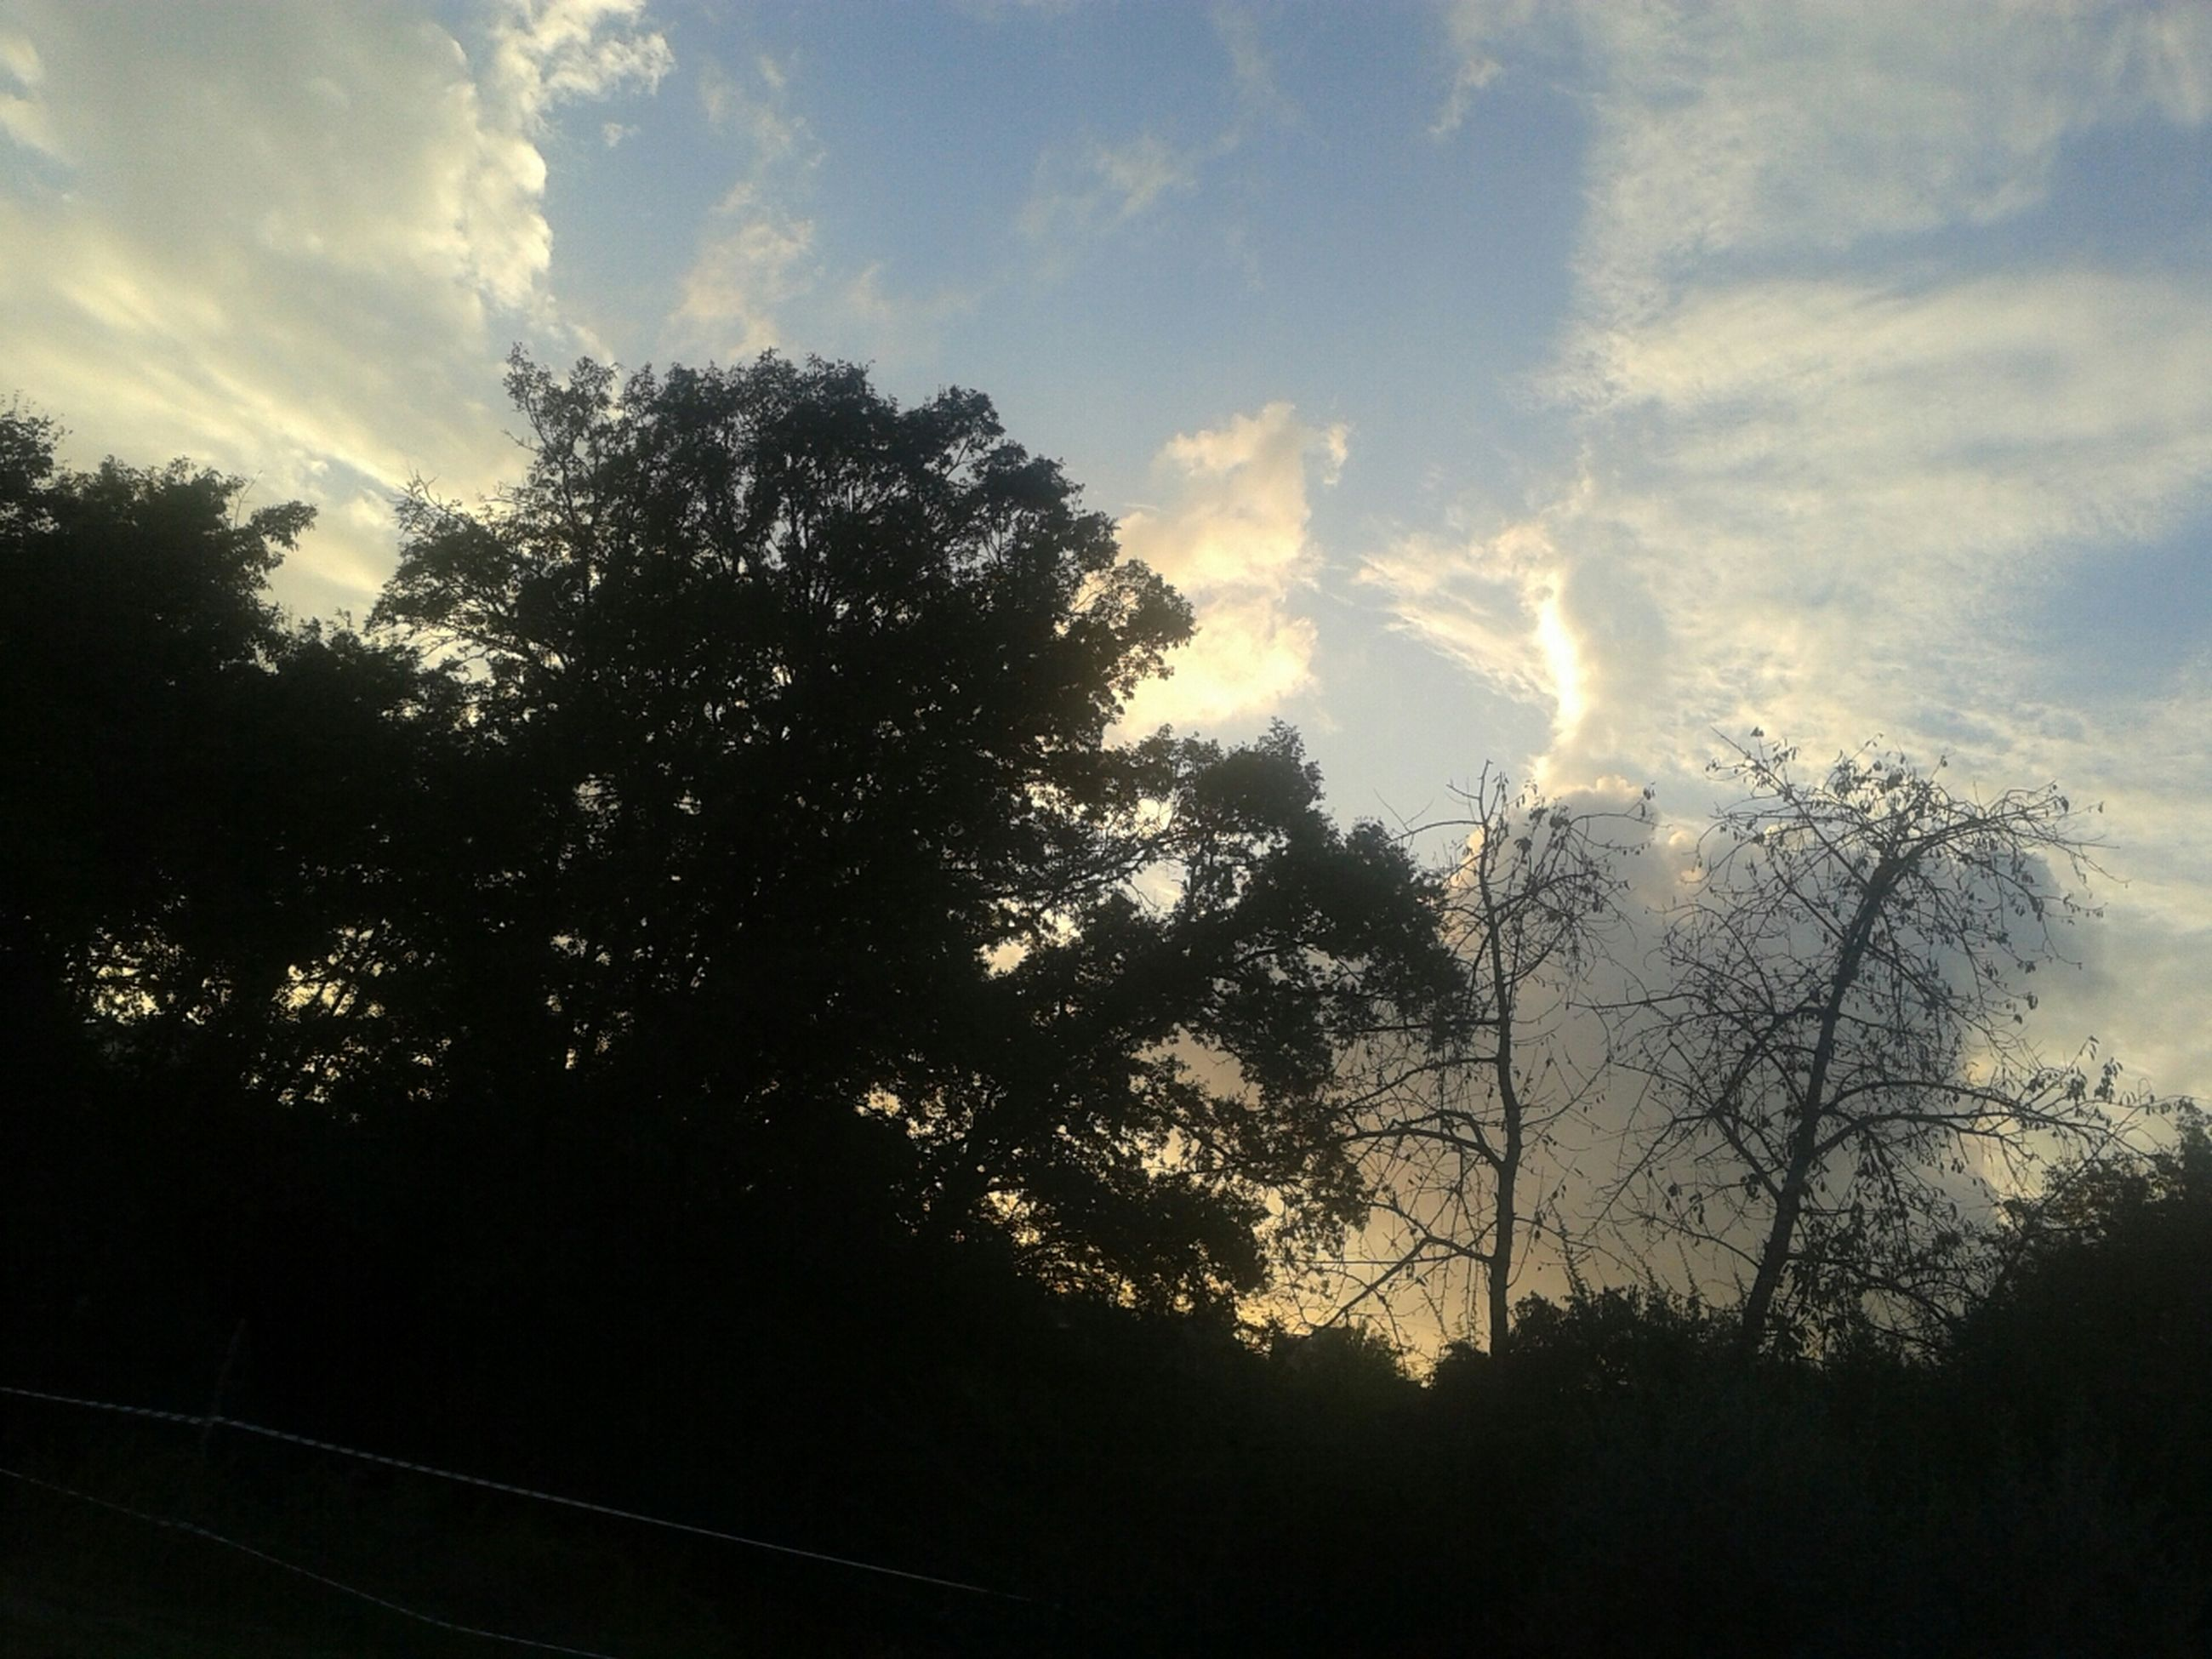 tree, sky, silhouette, cloud - sky, tranquility, low angle view, beauty in nature, nature, tranquil scene, scenics, growth, cloudy, cloud, no people, branch, outdoors, sunset, sunlight, day, bare tree